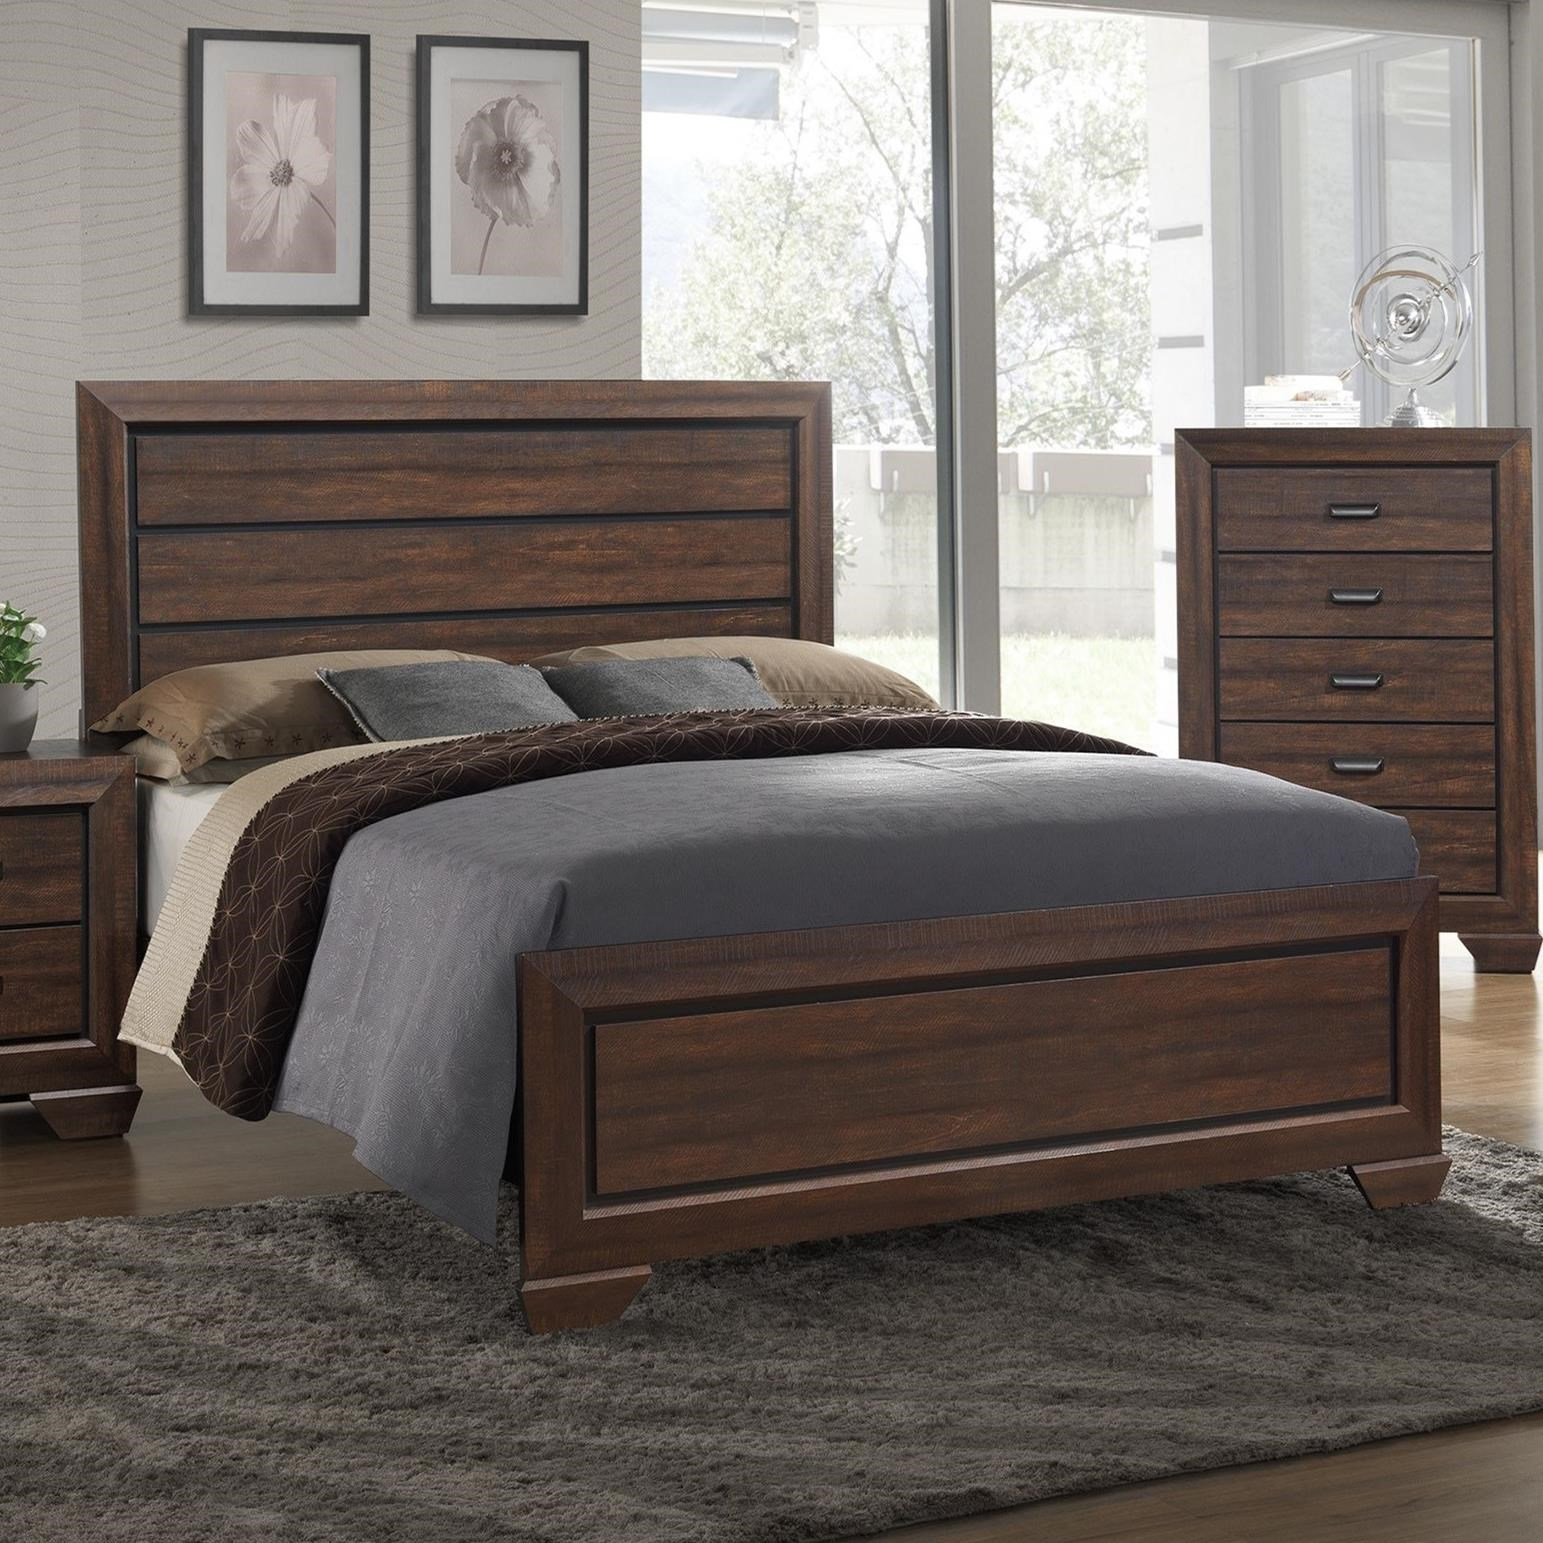 Farrow Twin Headboard and Footboard Bed by Crown Mark at Catalog Outlet